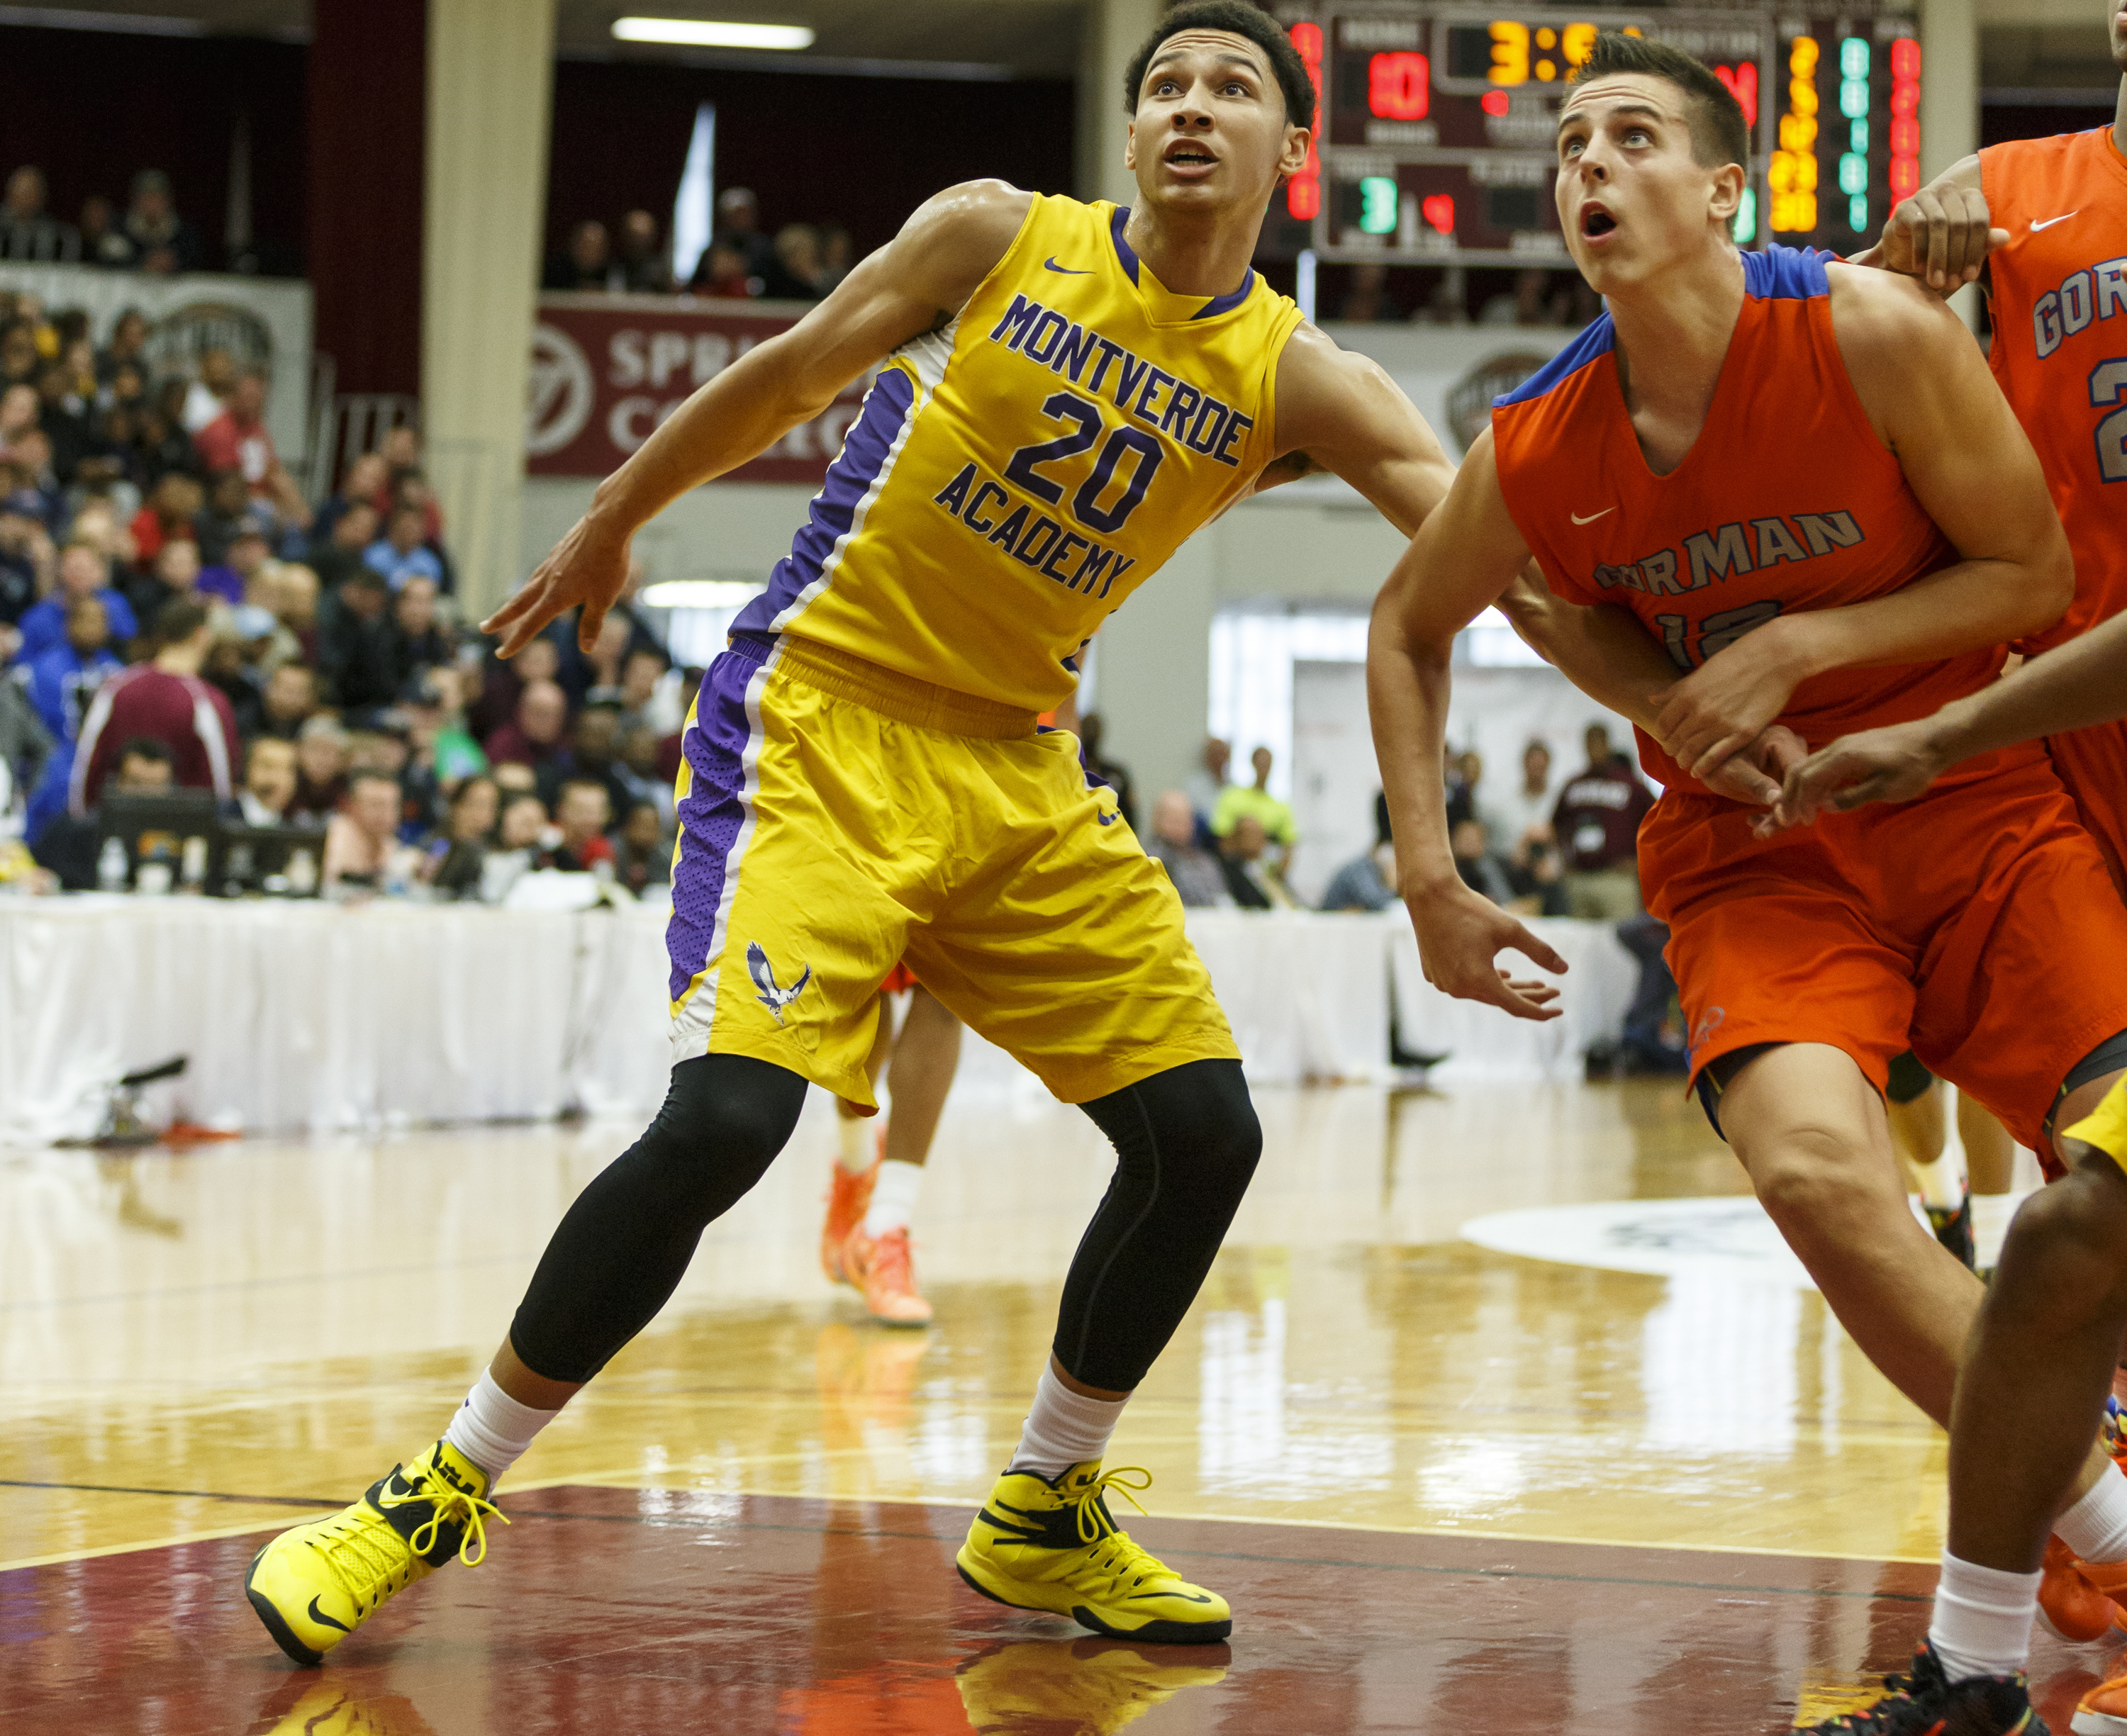 Montverde Academy's Ben Simmons (left)  is hoping to win a third consecutive national title. (Photo: David Butler, USA TODAY Sports)